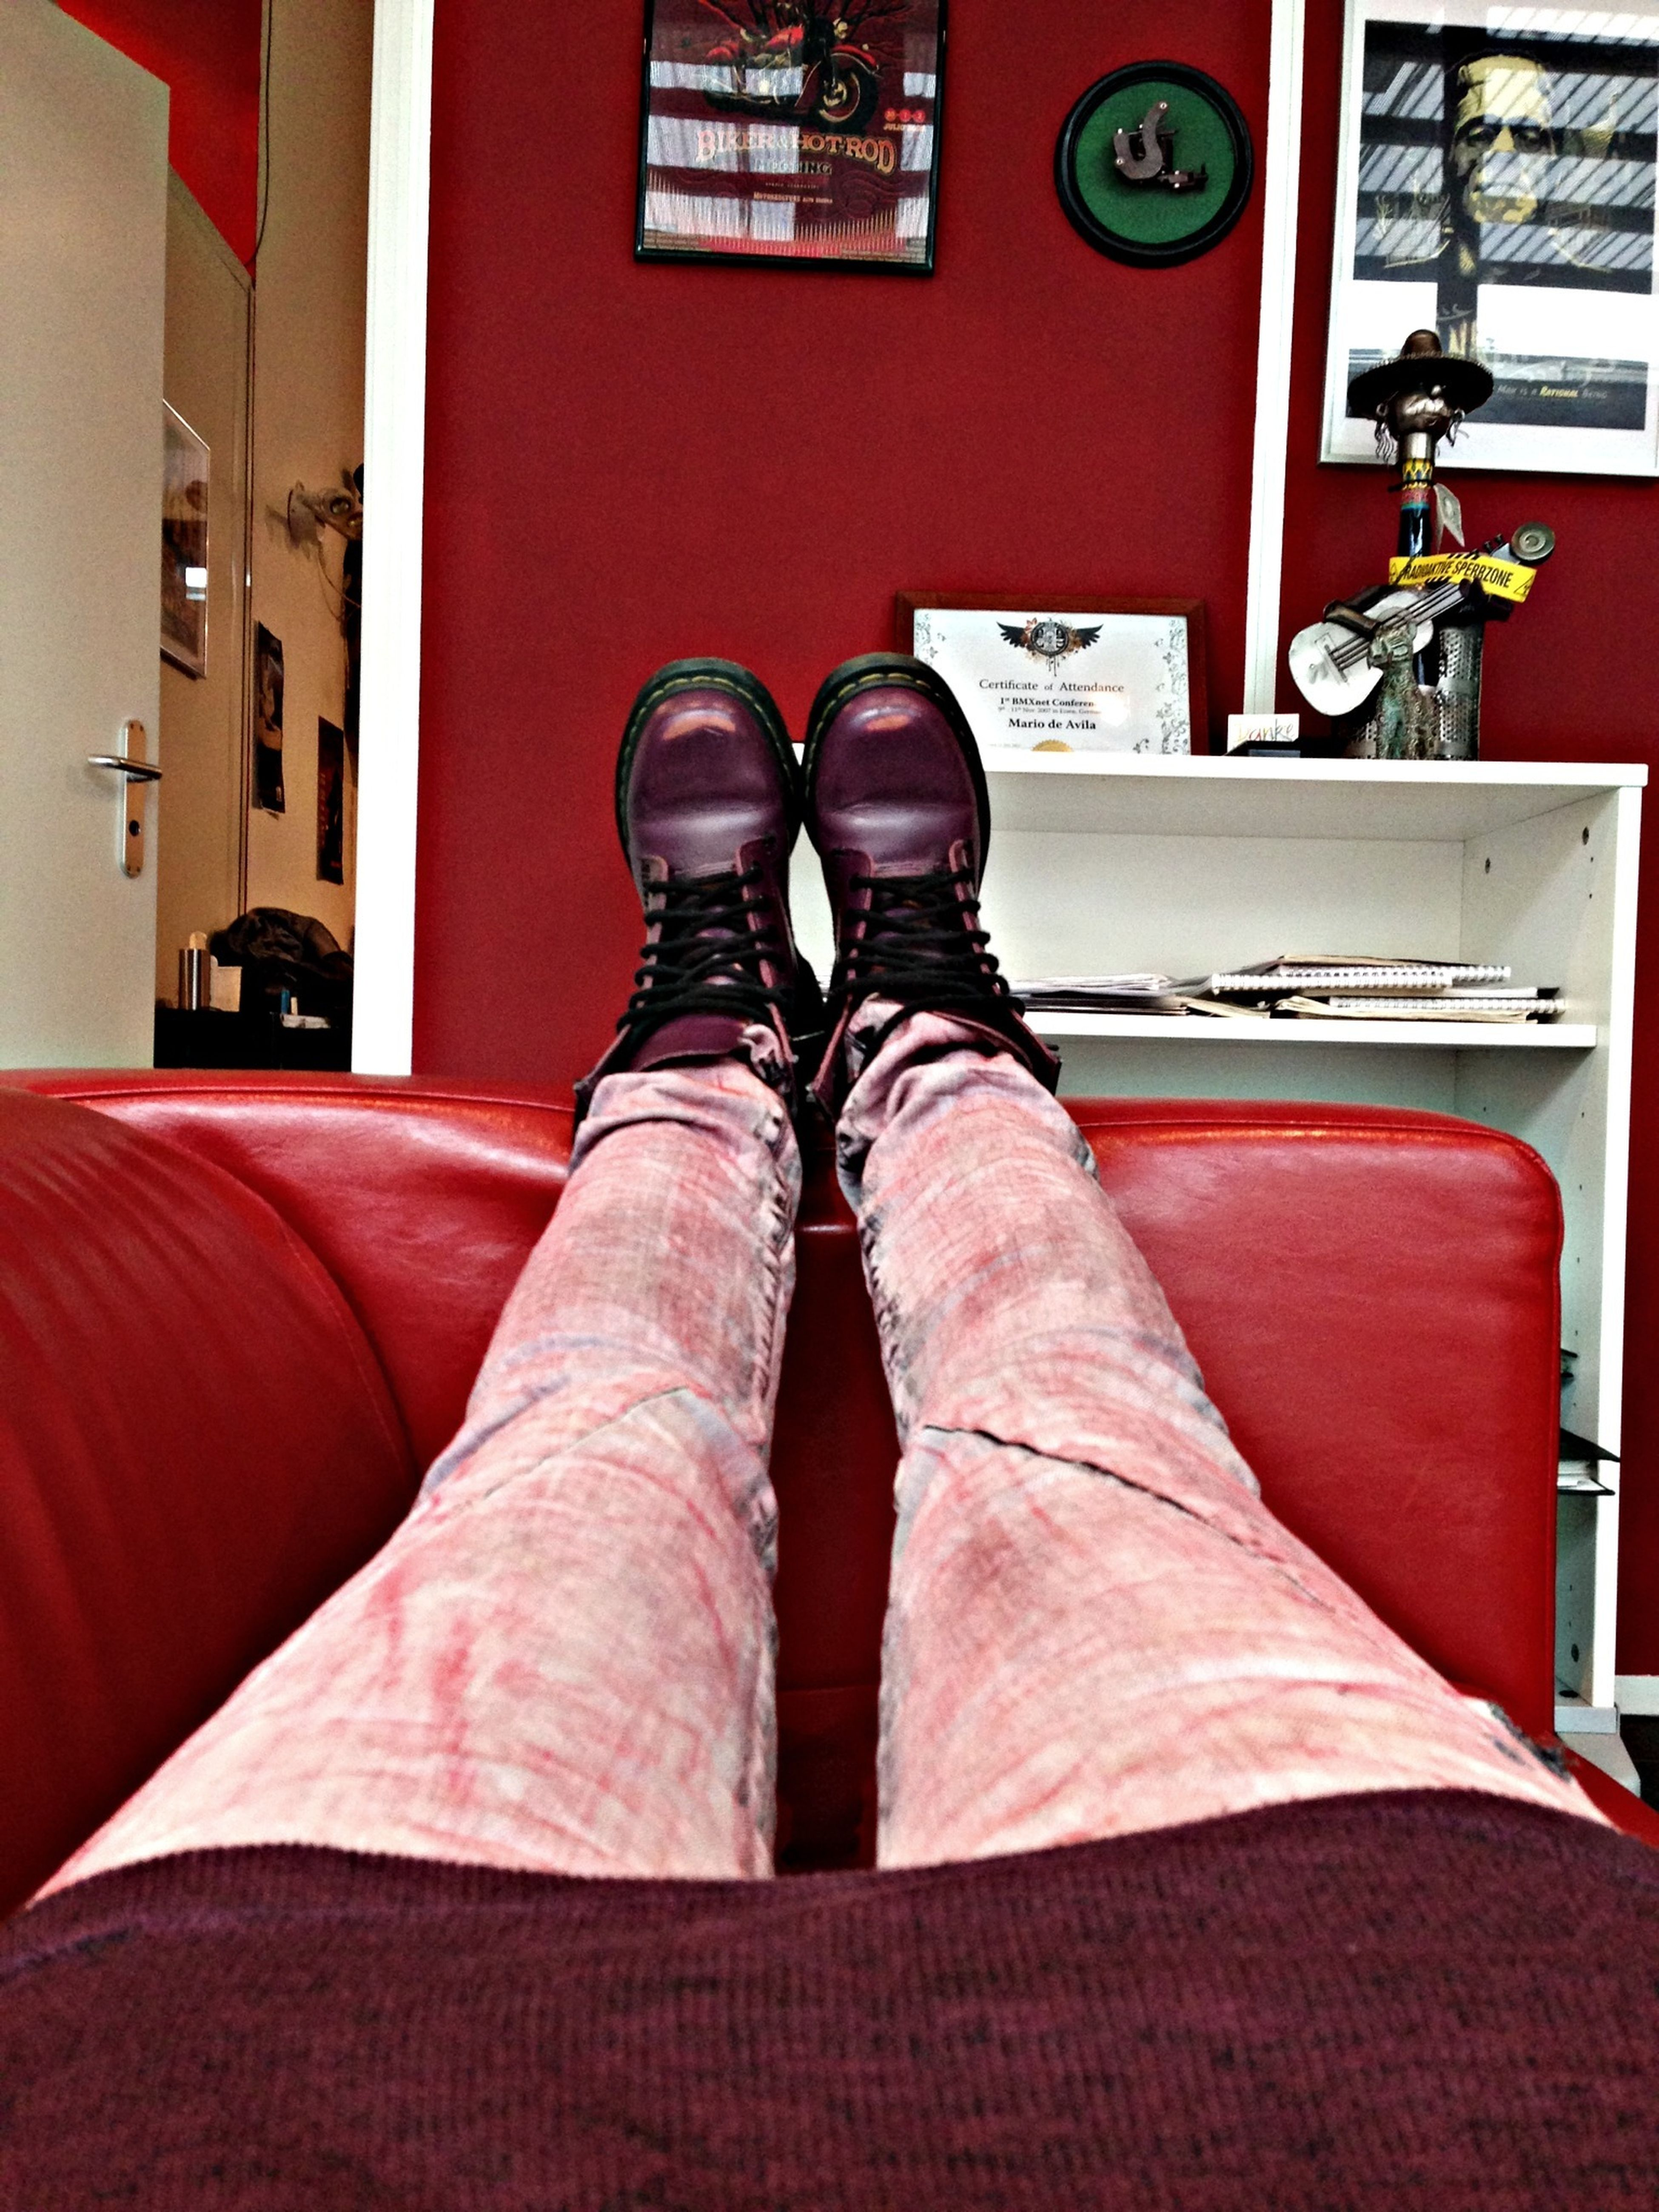 Chilling Dr Martens Pleasejeans Tattoo Office